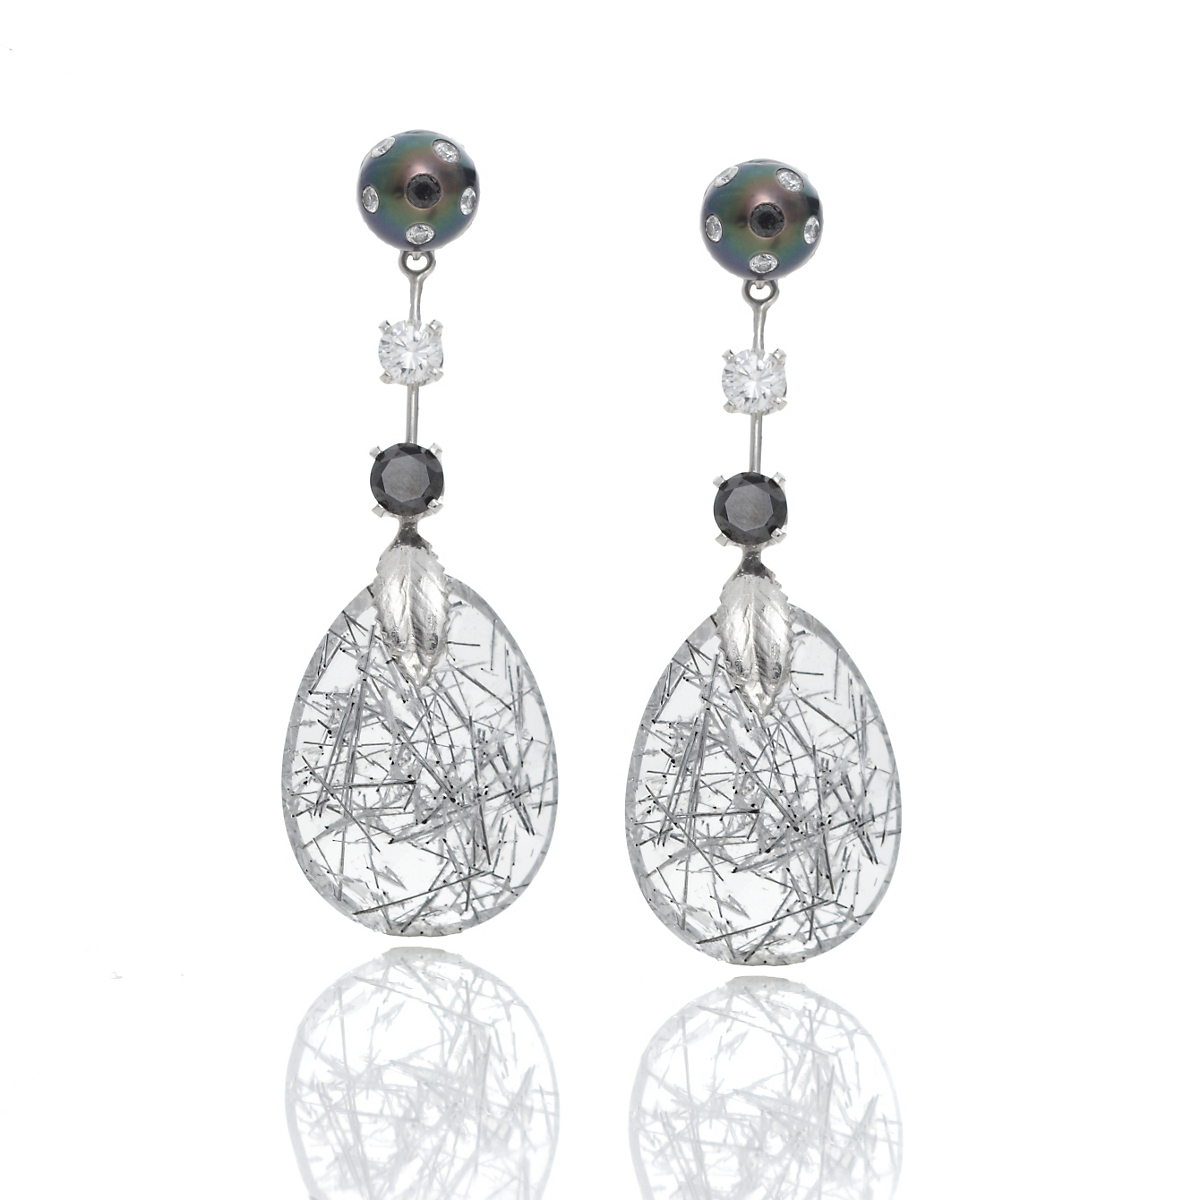 Russell Trusso Black & White Diamond Earrings